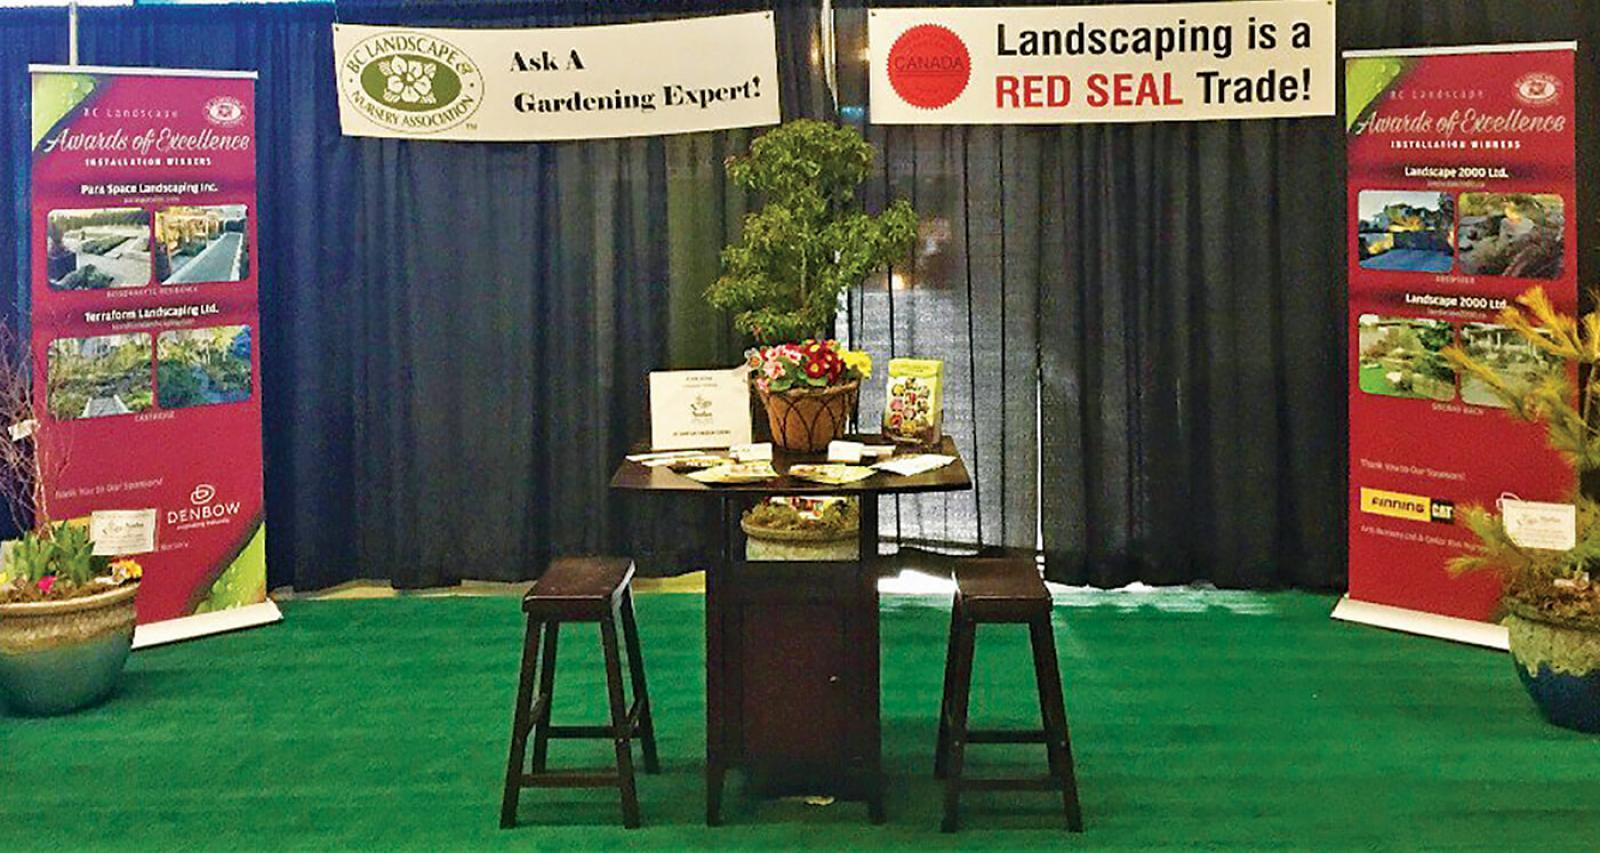 BCLNA booth at the Vancouver home show.